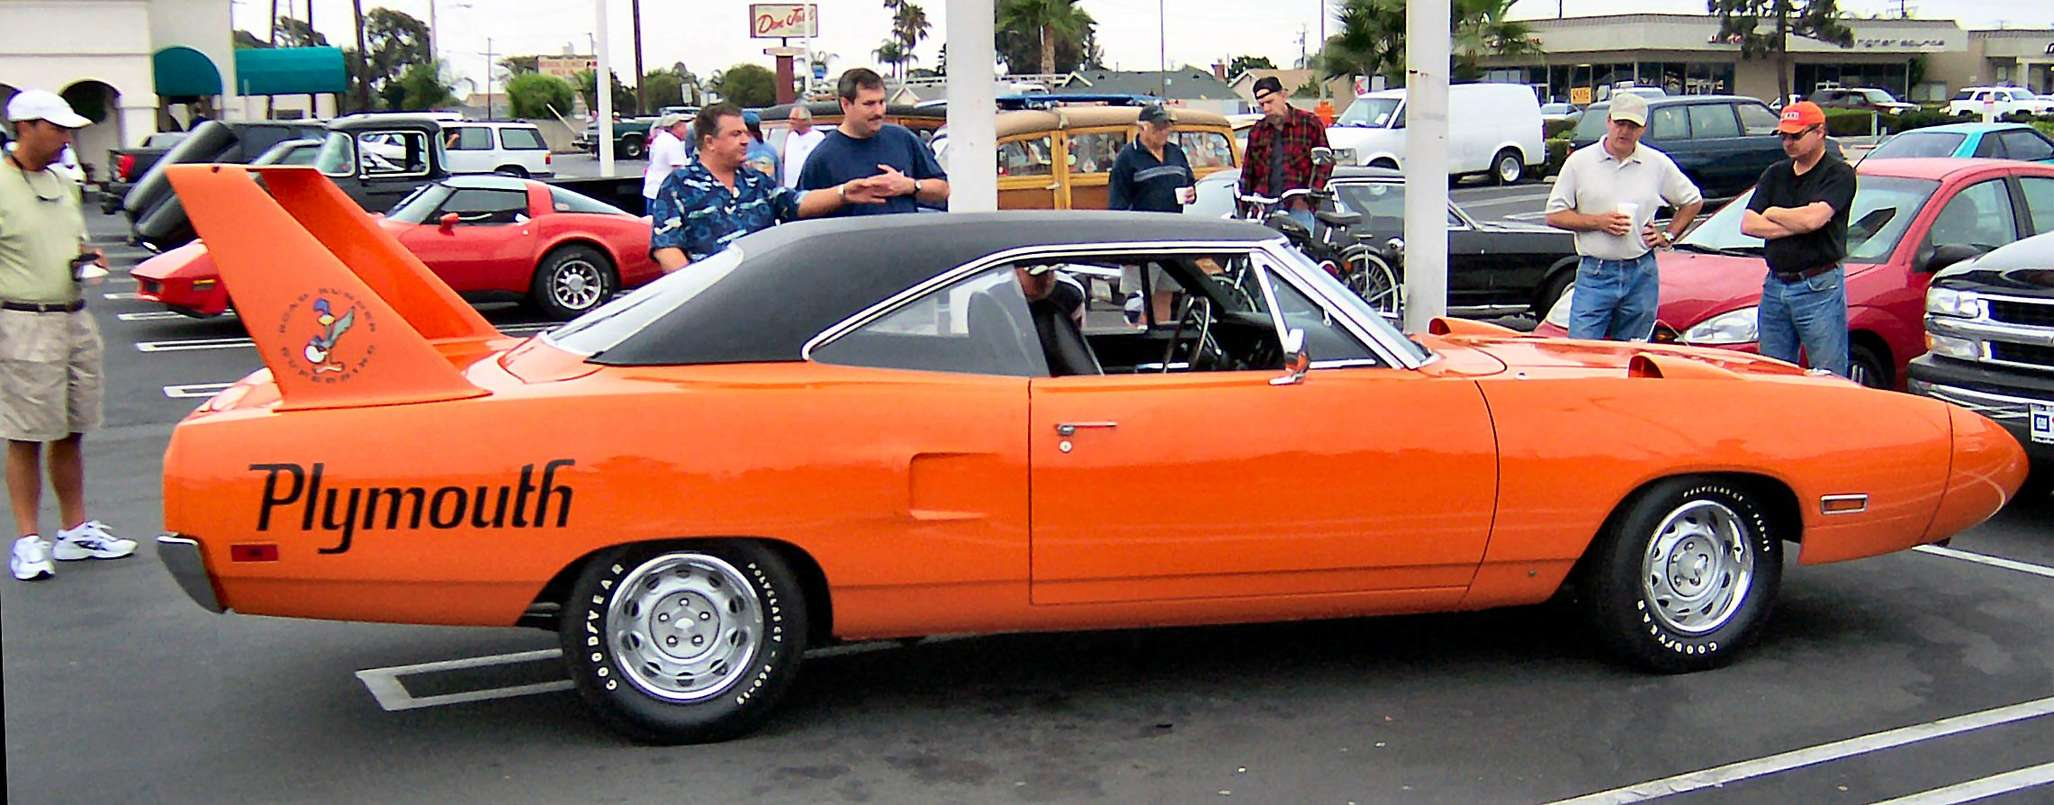 Plymouth Road Runner #8883610